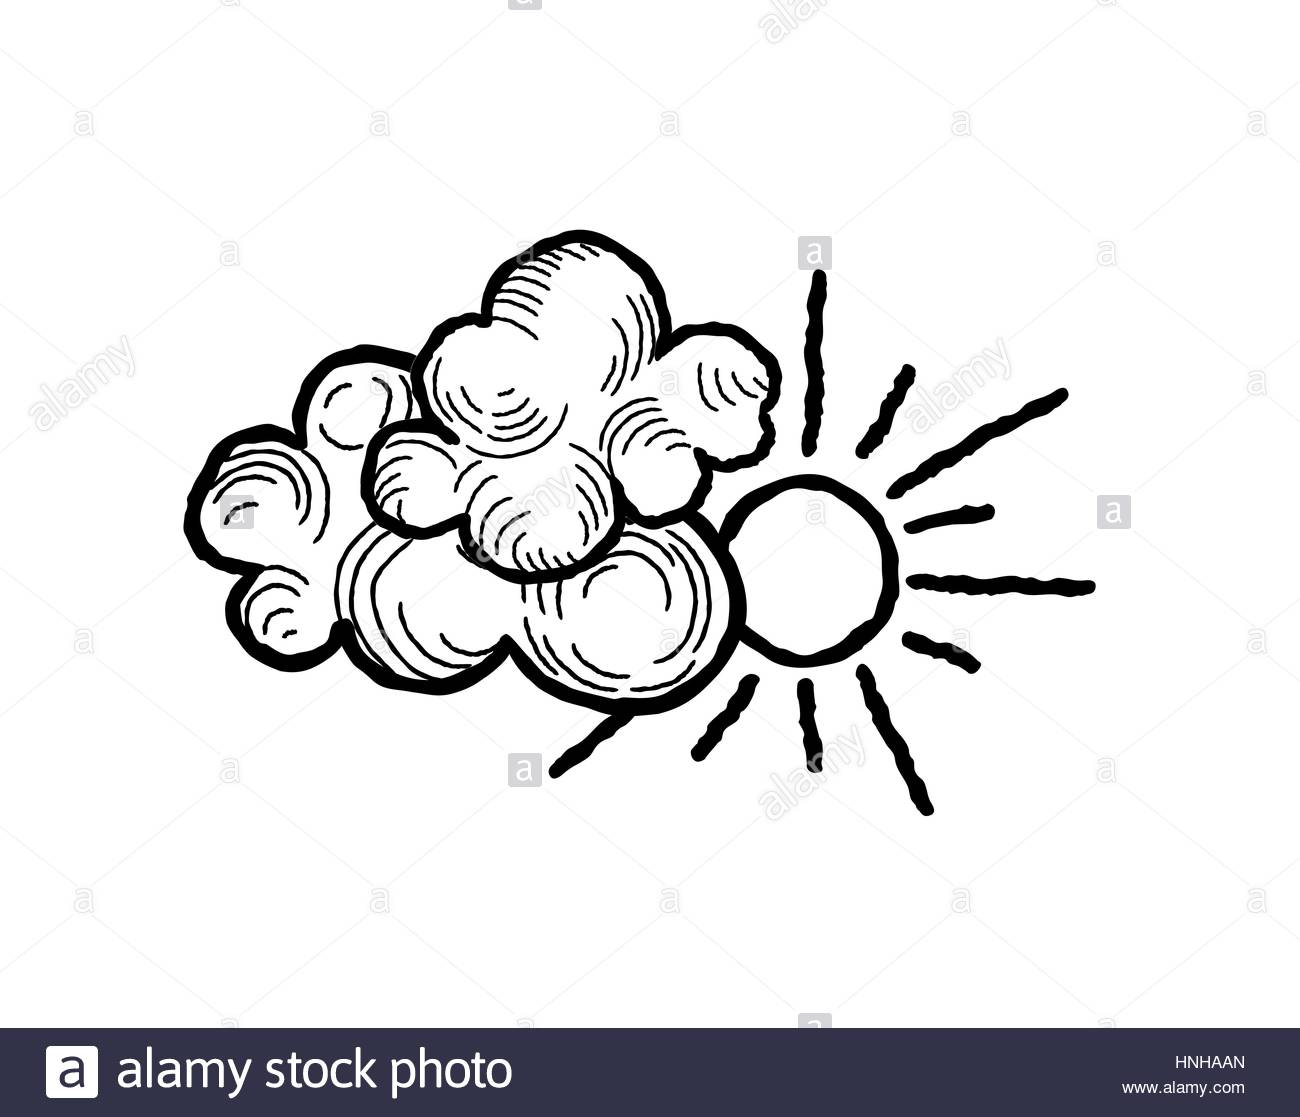 1300x1117 Sun With Clouds Icon. Doodle Line Art Weather Sign Illustration